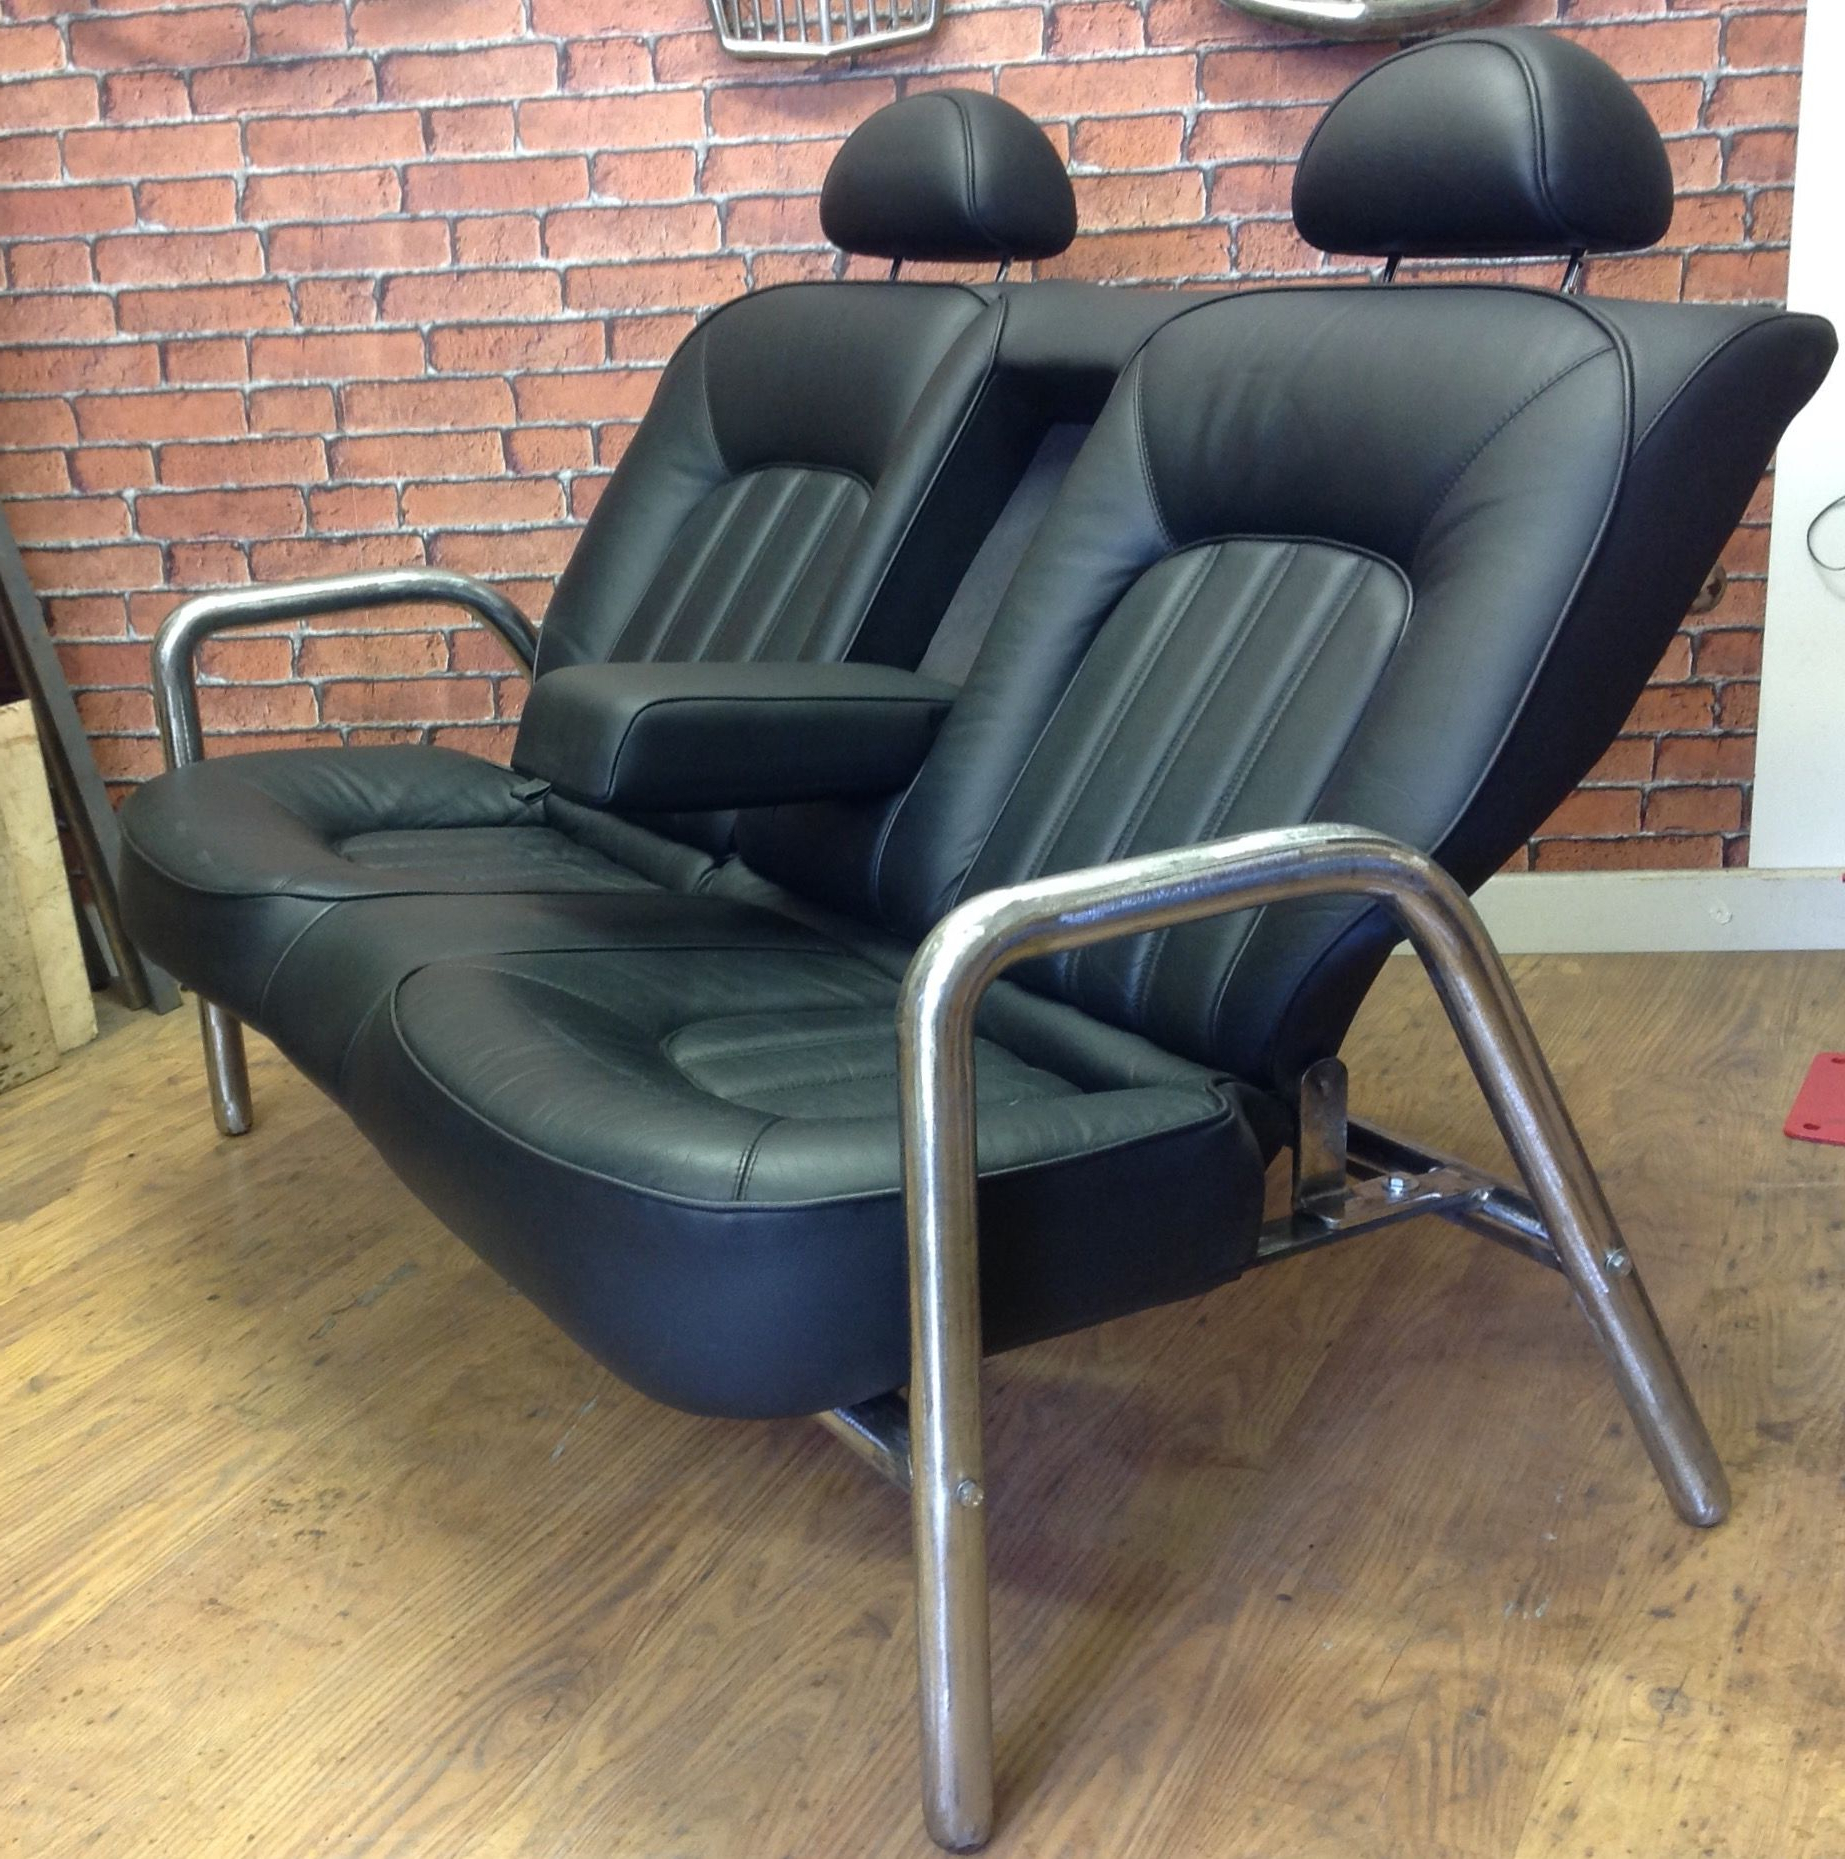 Latest Rover Mofa. Rear Car Seat, Chair, Sofa. Loft Style (View 15 of 20)